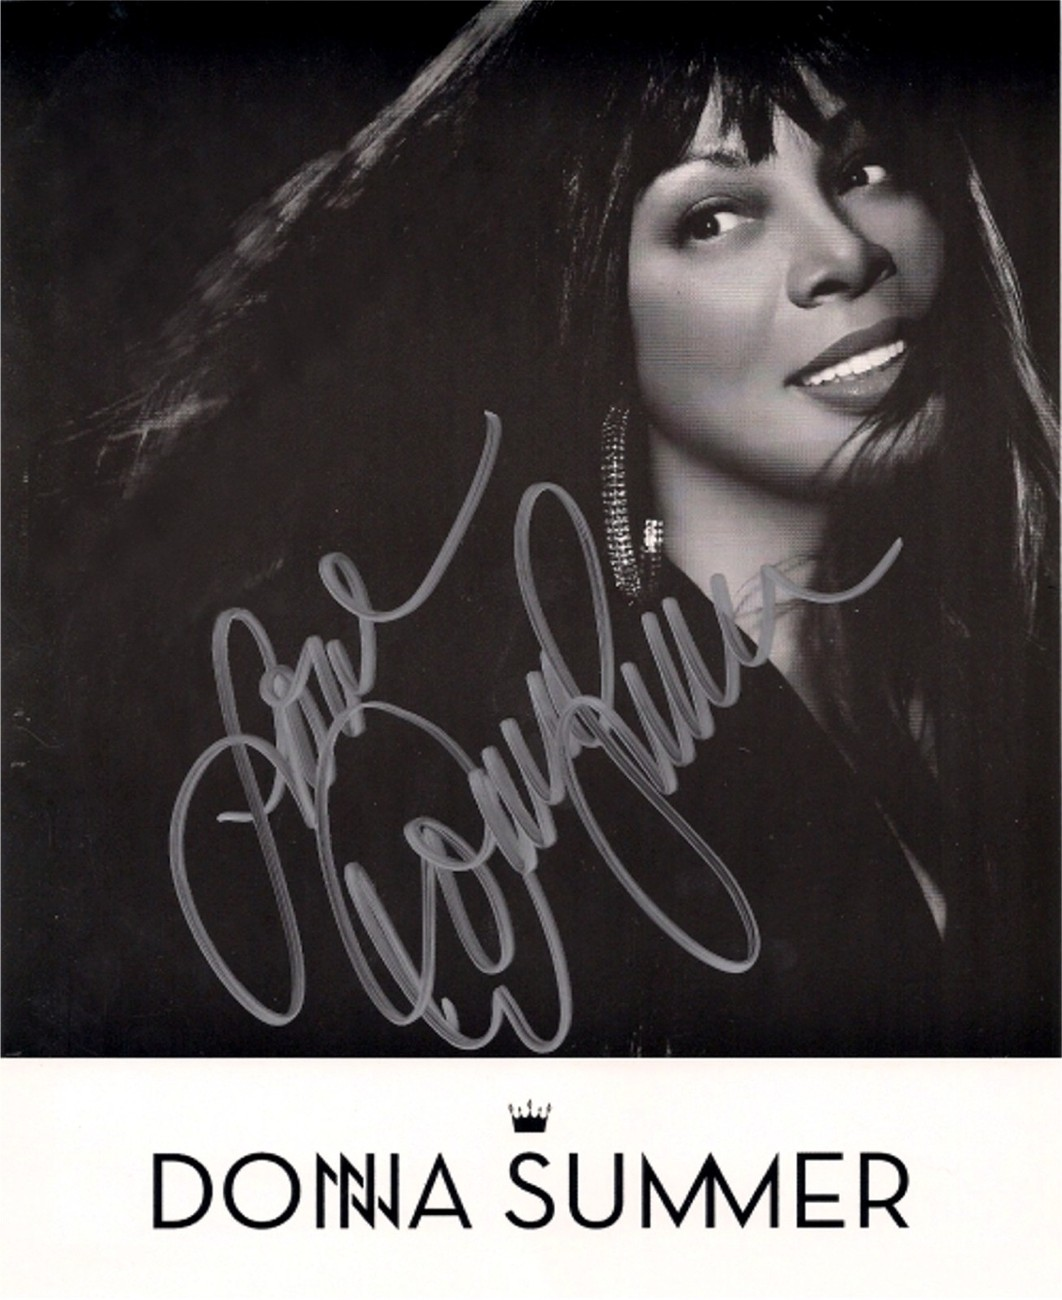 DONNA SUMMER AUTOGRAPHED 8x10 RP PHOTO BEAUTIFUL DISCO QUEEN